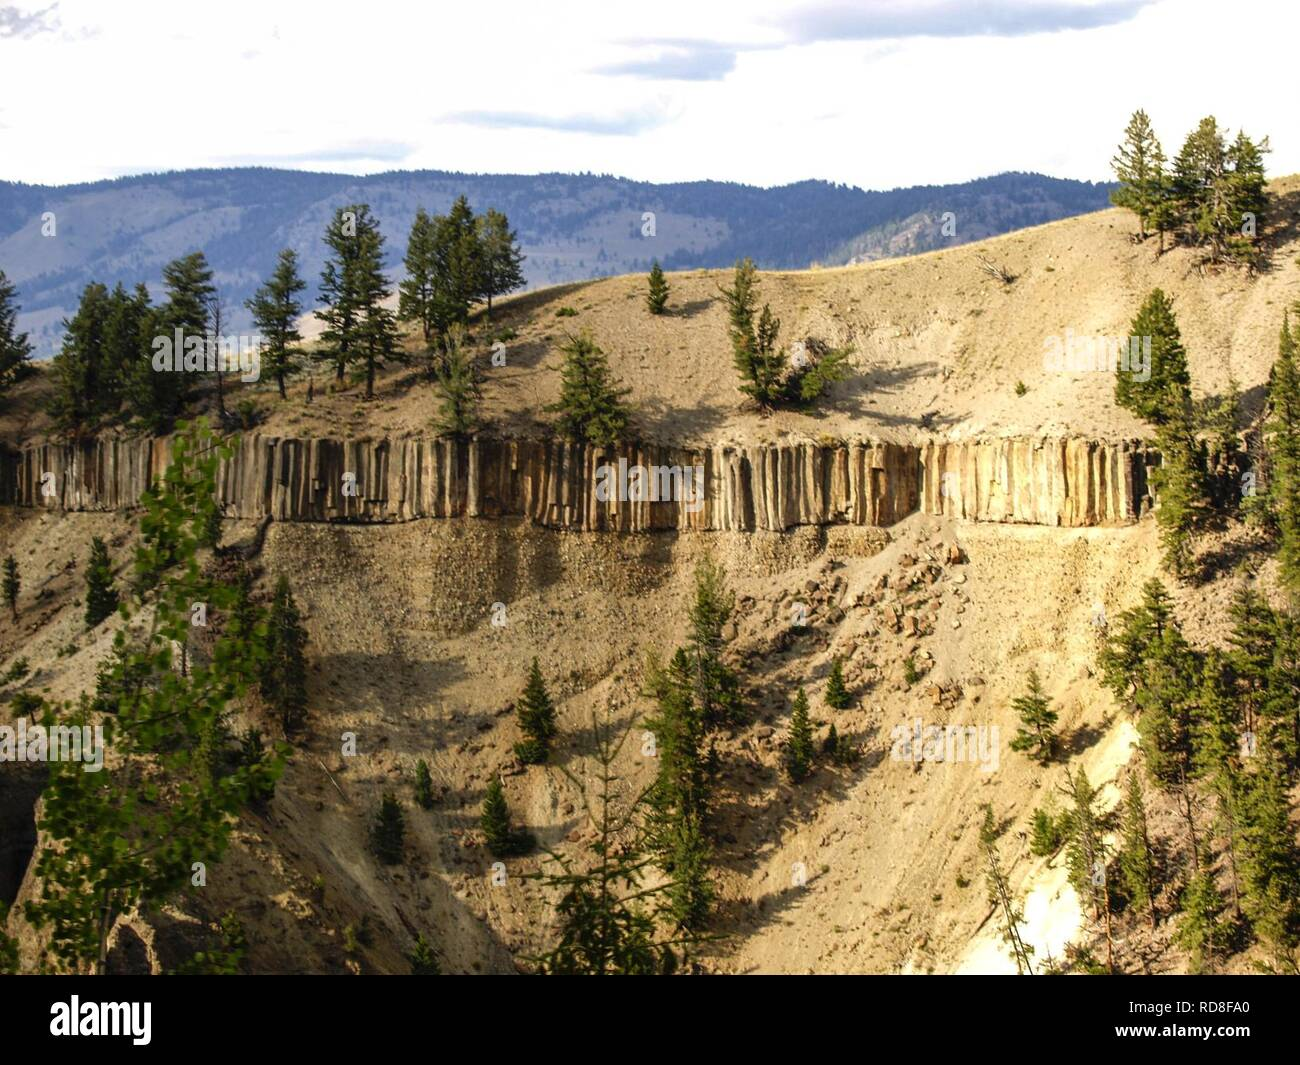 An Igneous Sill Intrusion in Yellowstone National Park Wyoming USA. - Stock Image